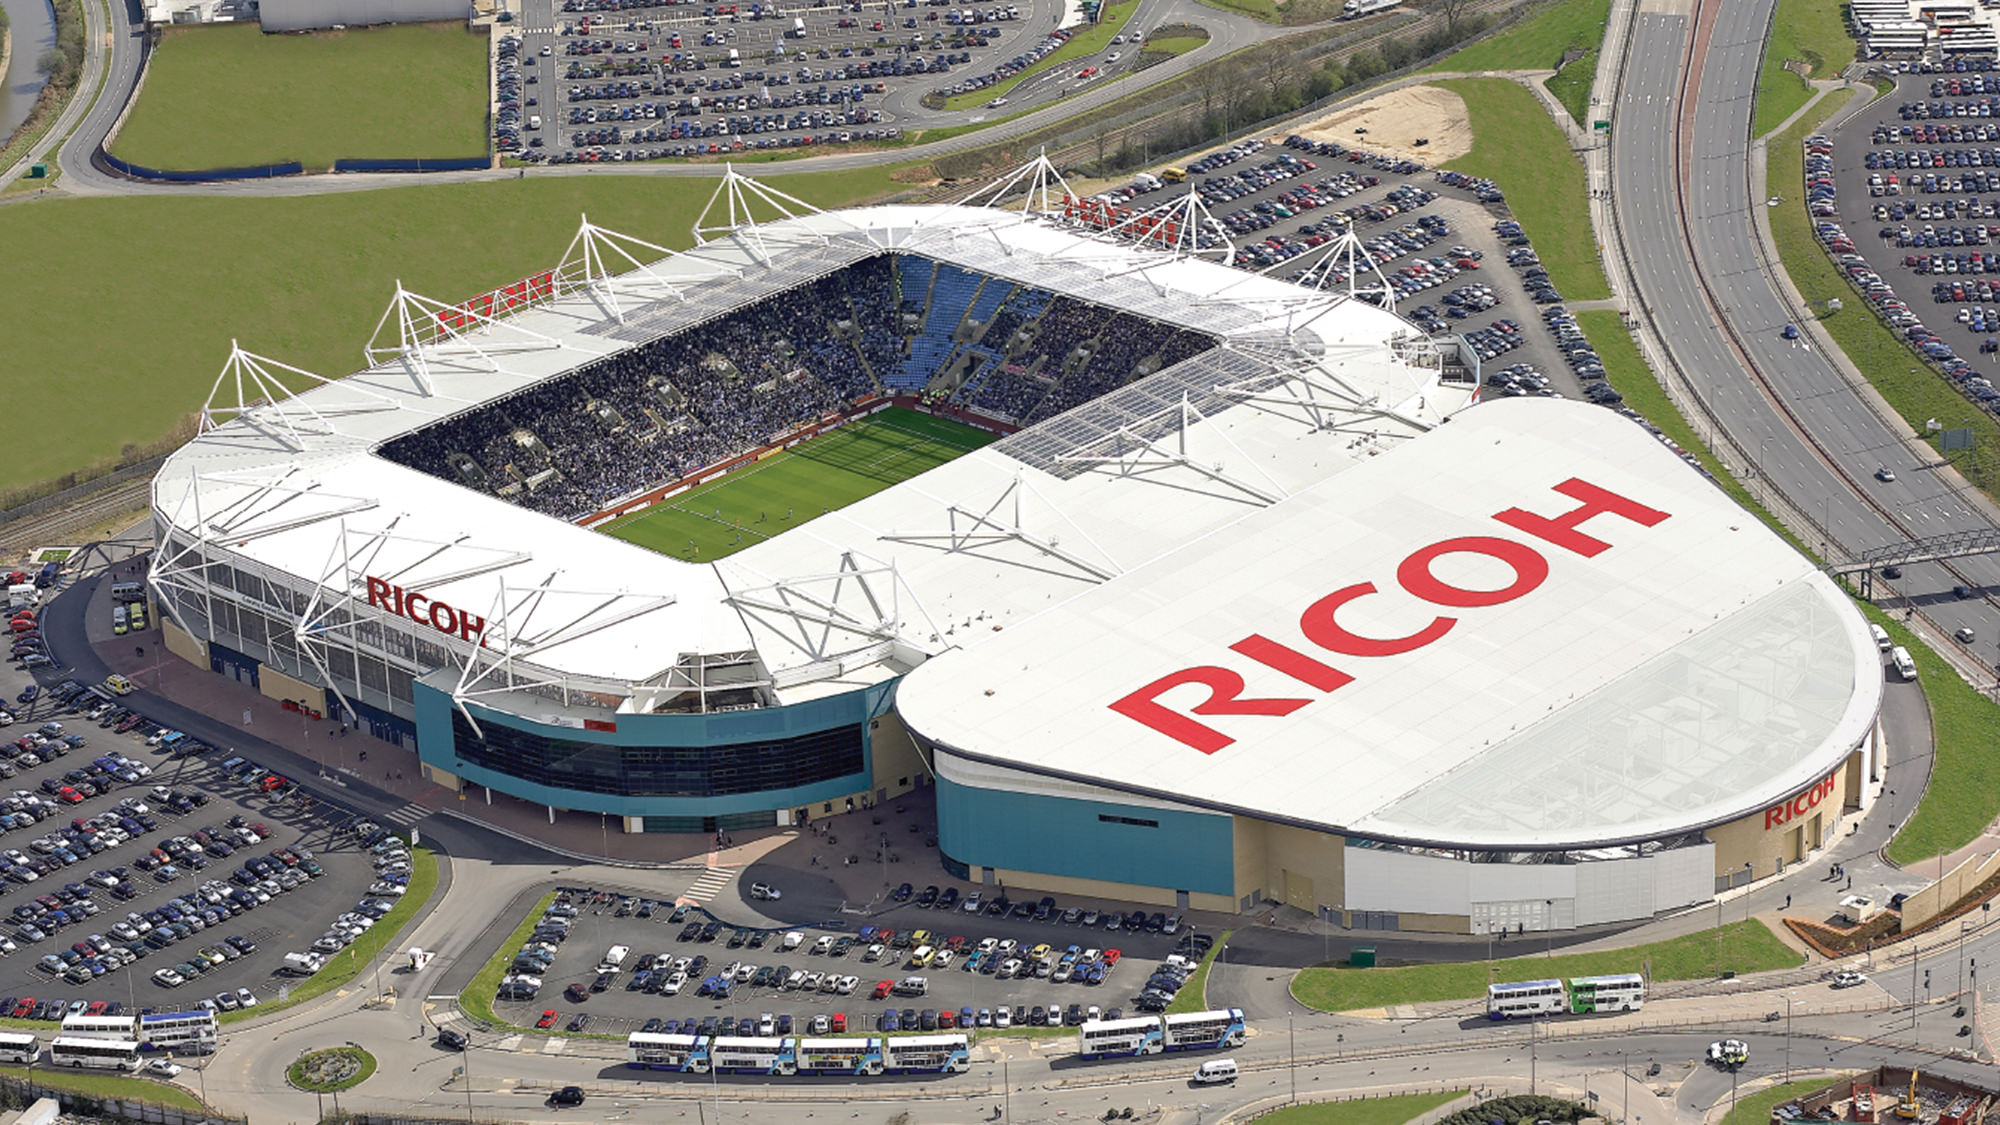 coventry-arena-project-image